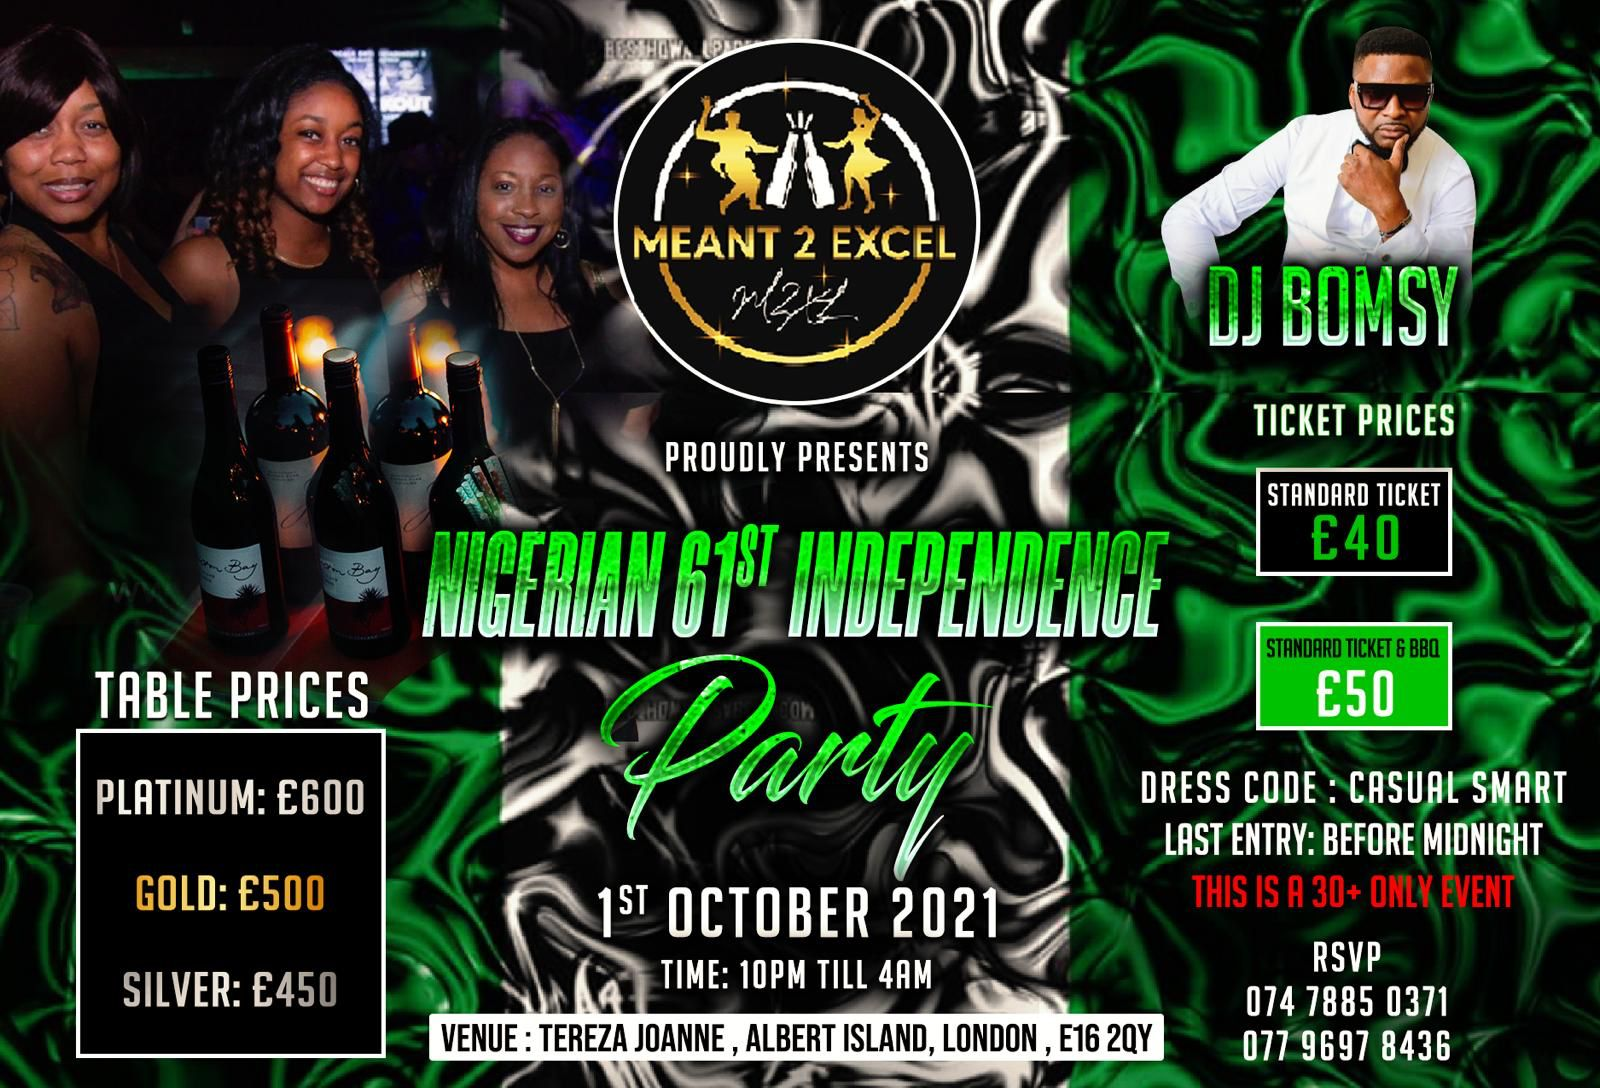 Nigerian 61st Independence Day Boat Party